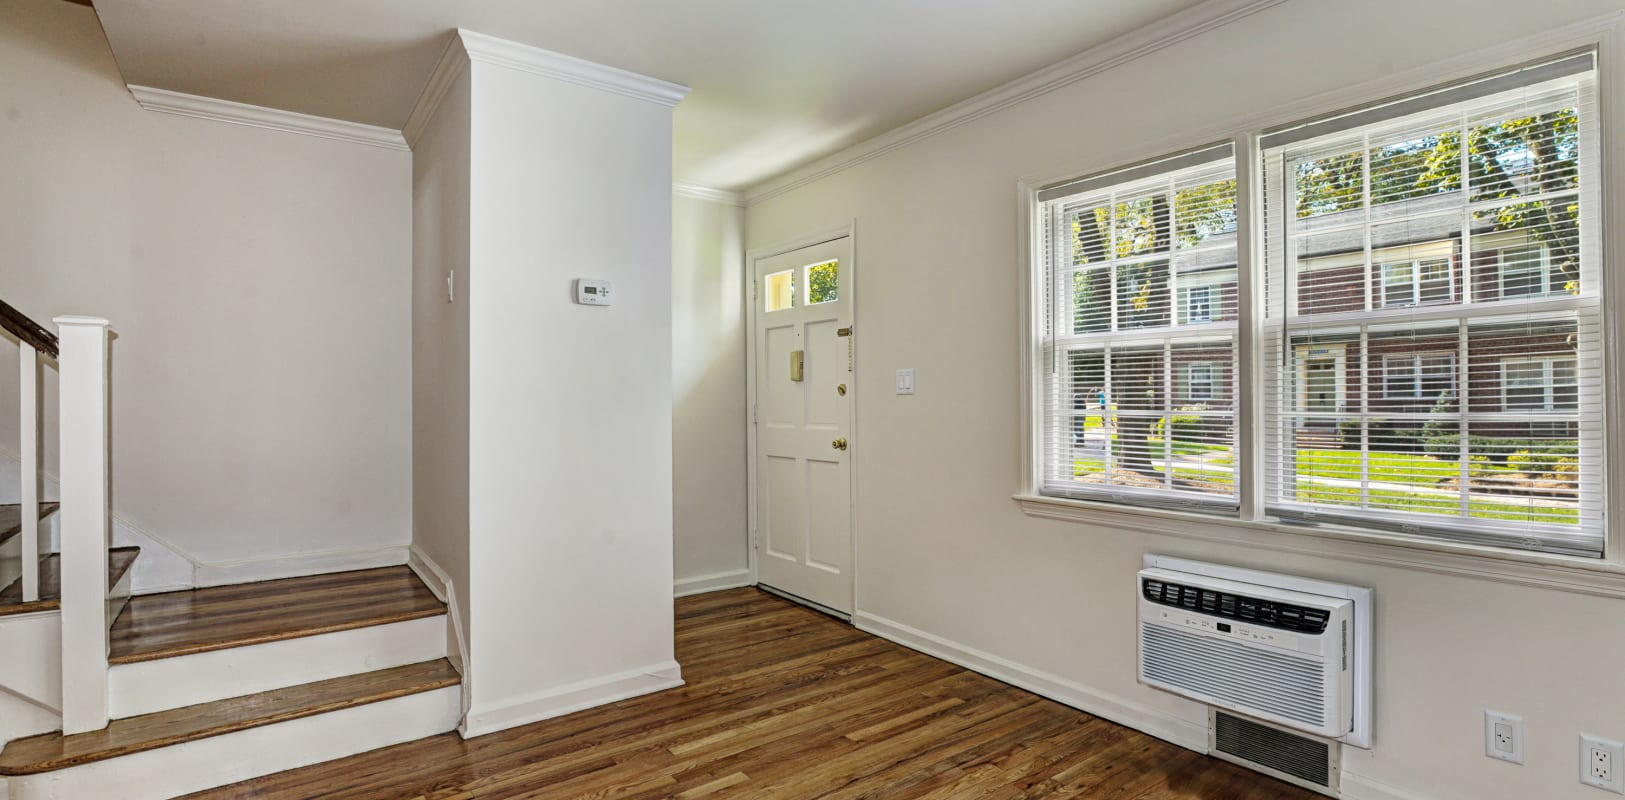 Wood-style flooring with white walls in a living area at General Wayne Townhomes and Ridgedale Gardens in Madison, New Jersey